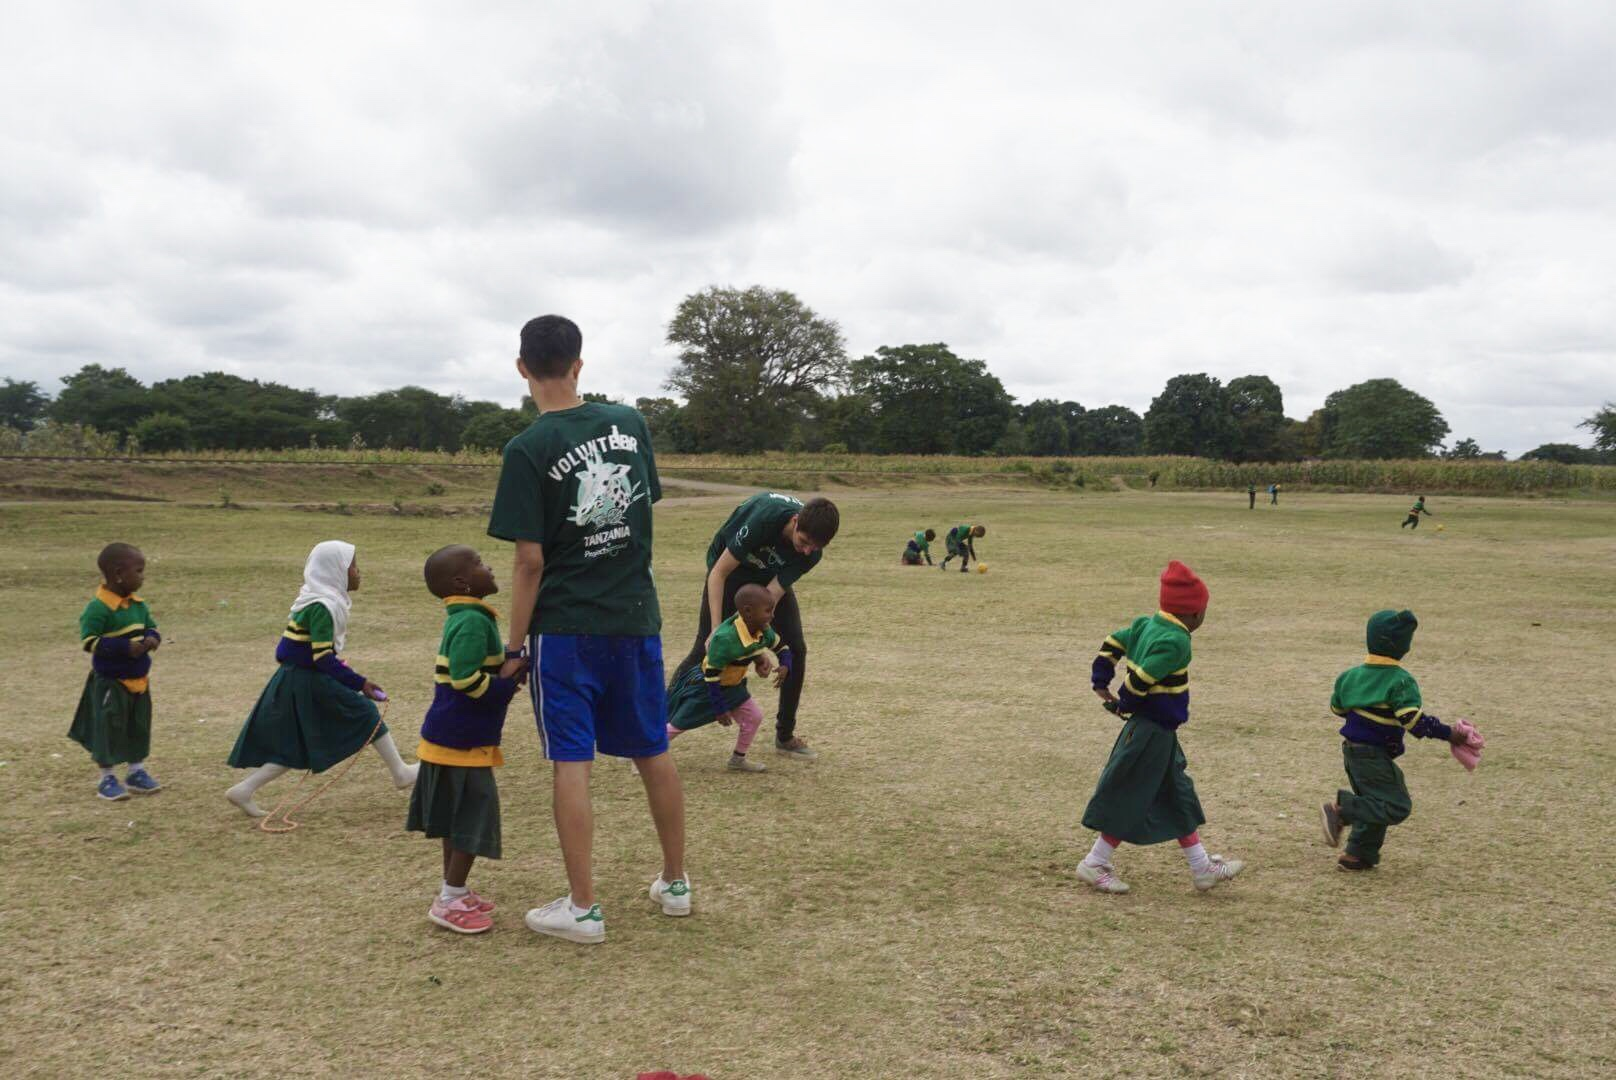 Volunteers playing with students in Arusha, Tanzania